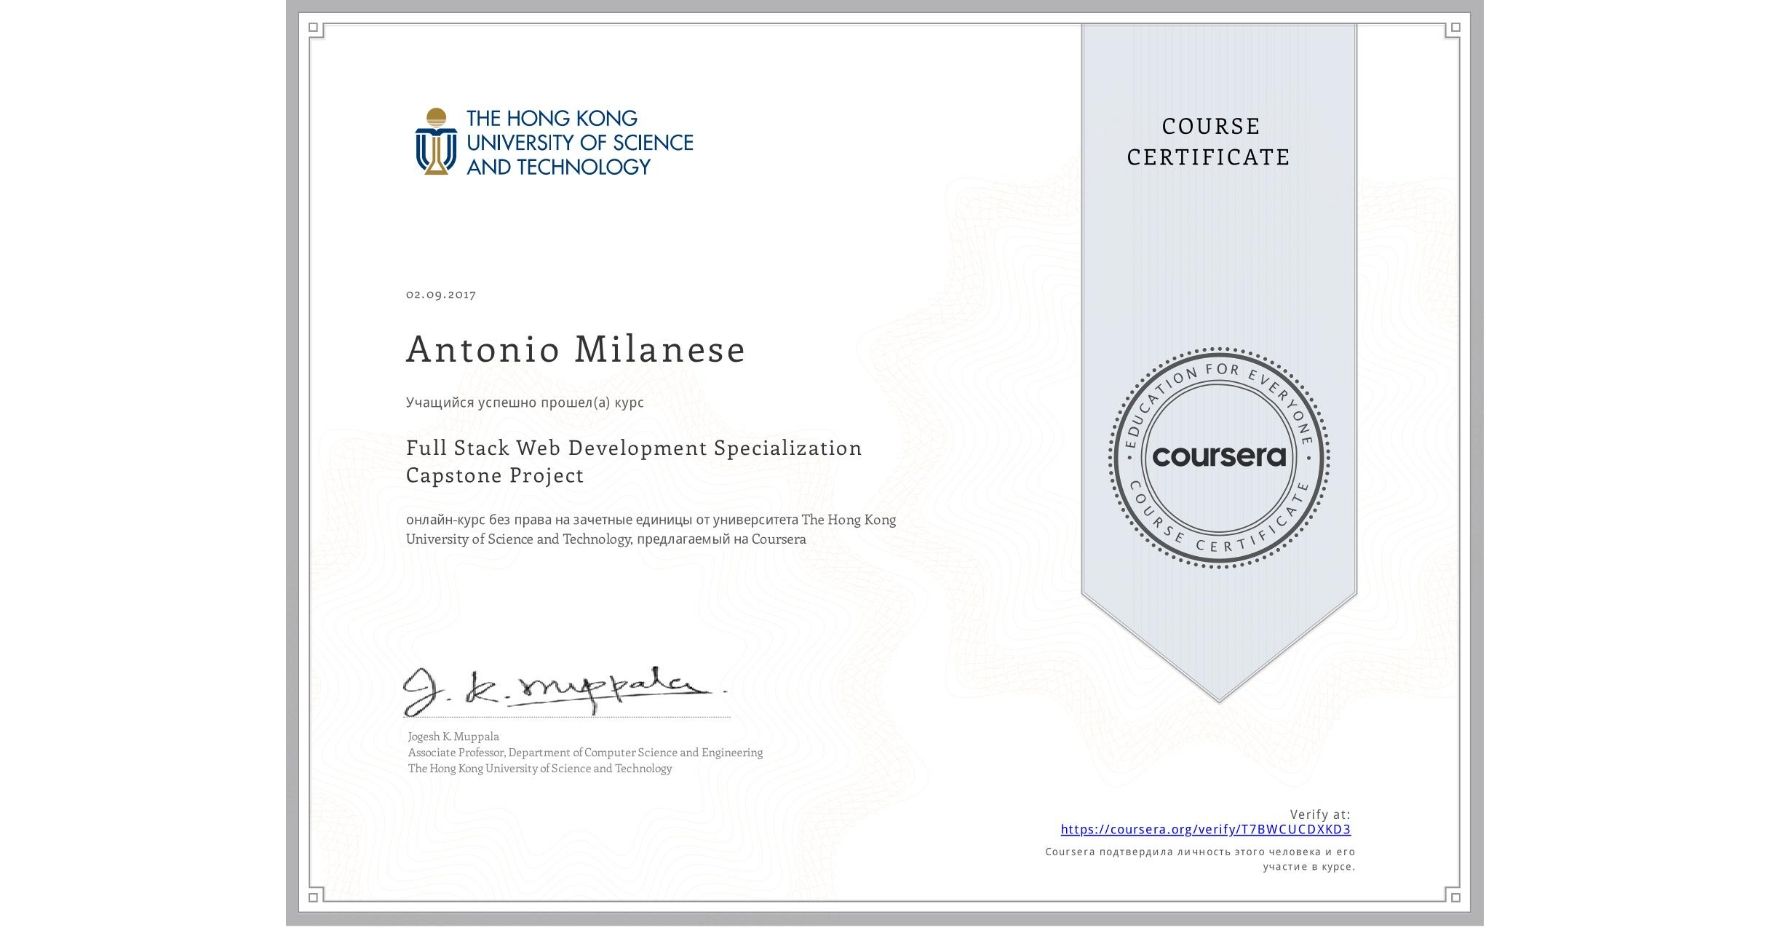 View certificate for Antonio Milanese, Full Stack Web Development Specialization Capstone Project, an online non-credit course authorized by The Hong Kong University of Science and Technology and offered through Coursera